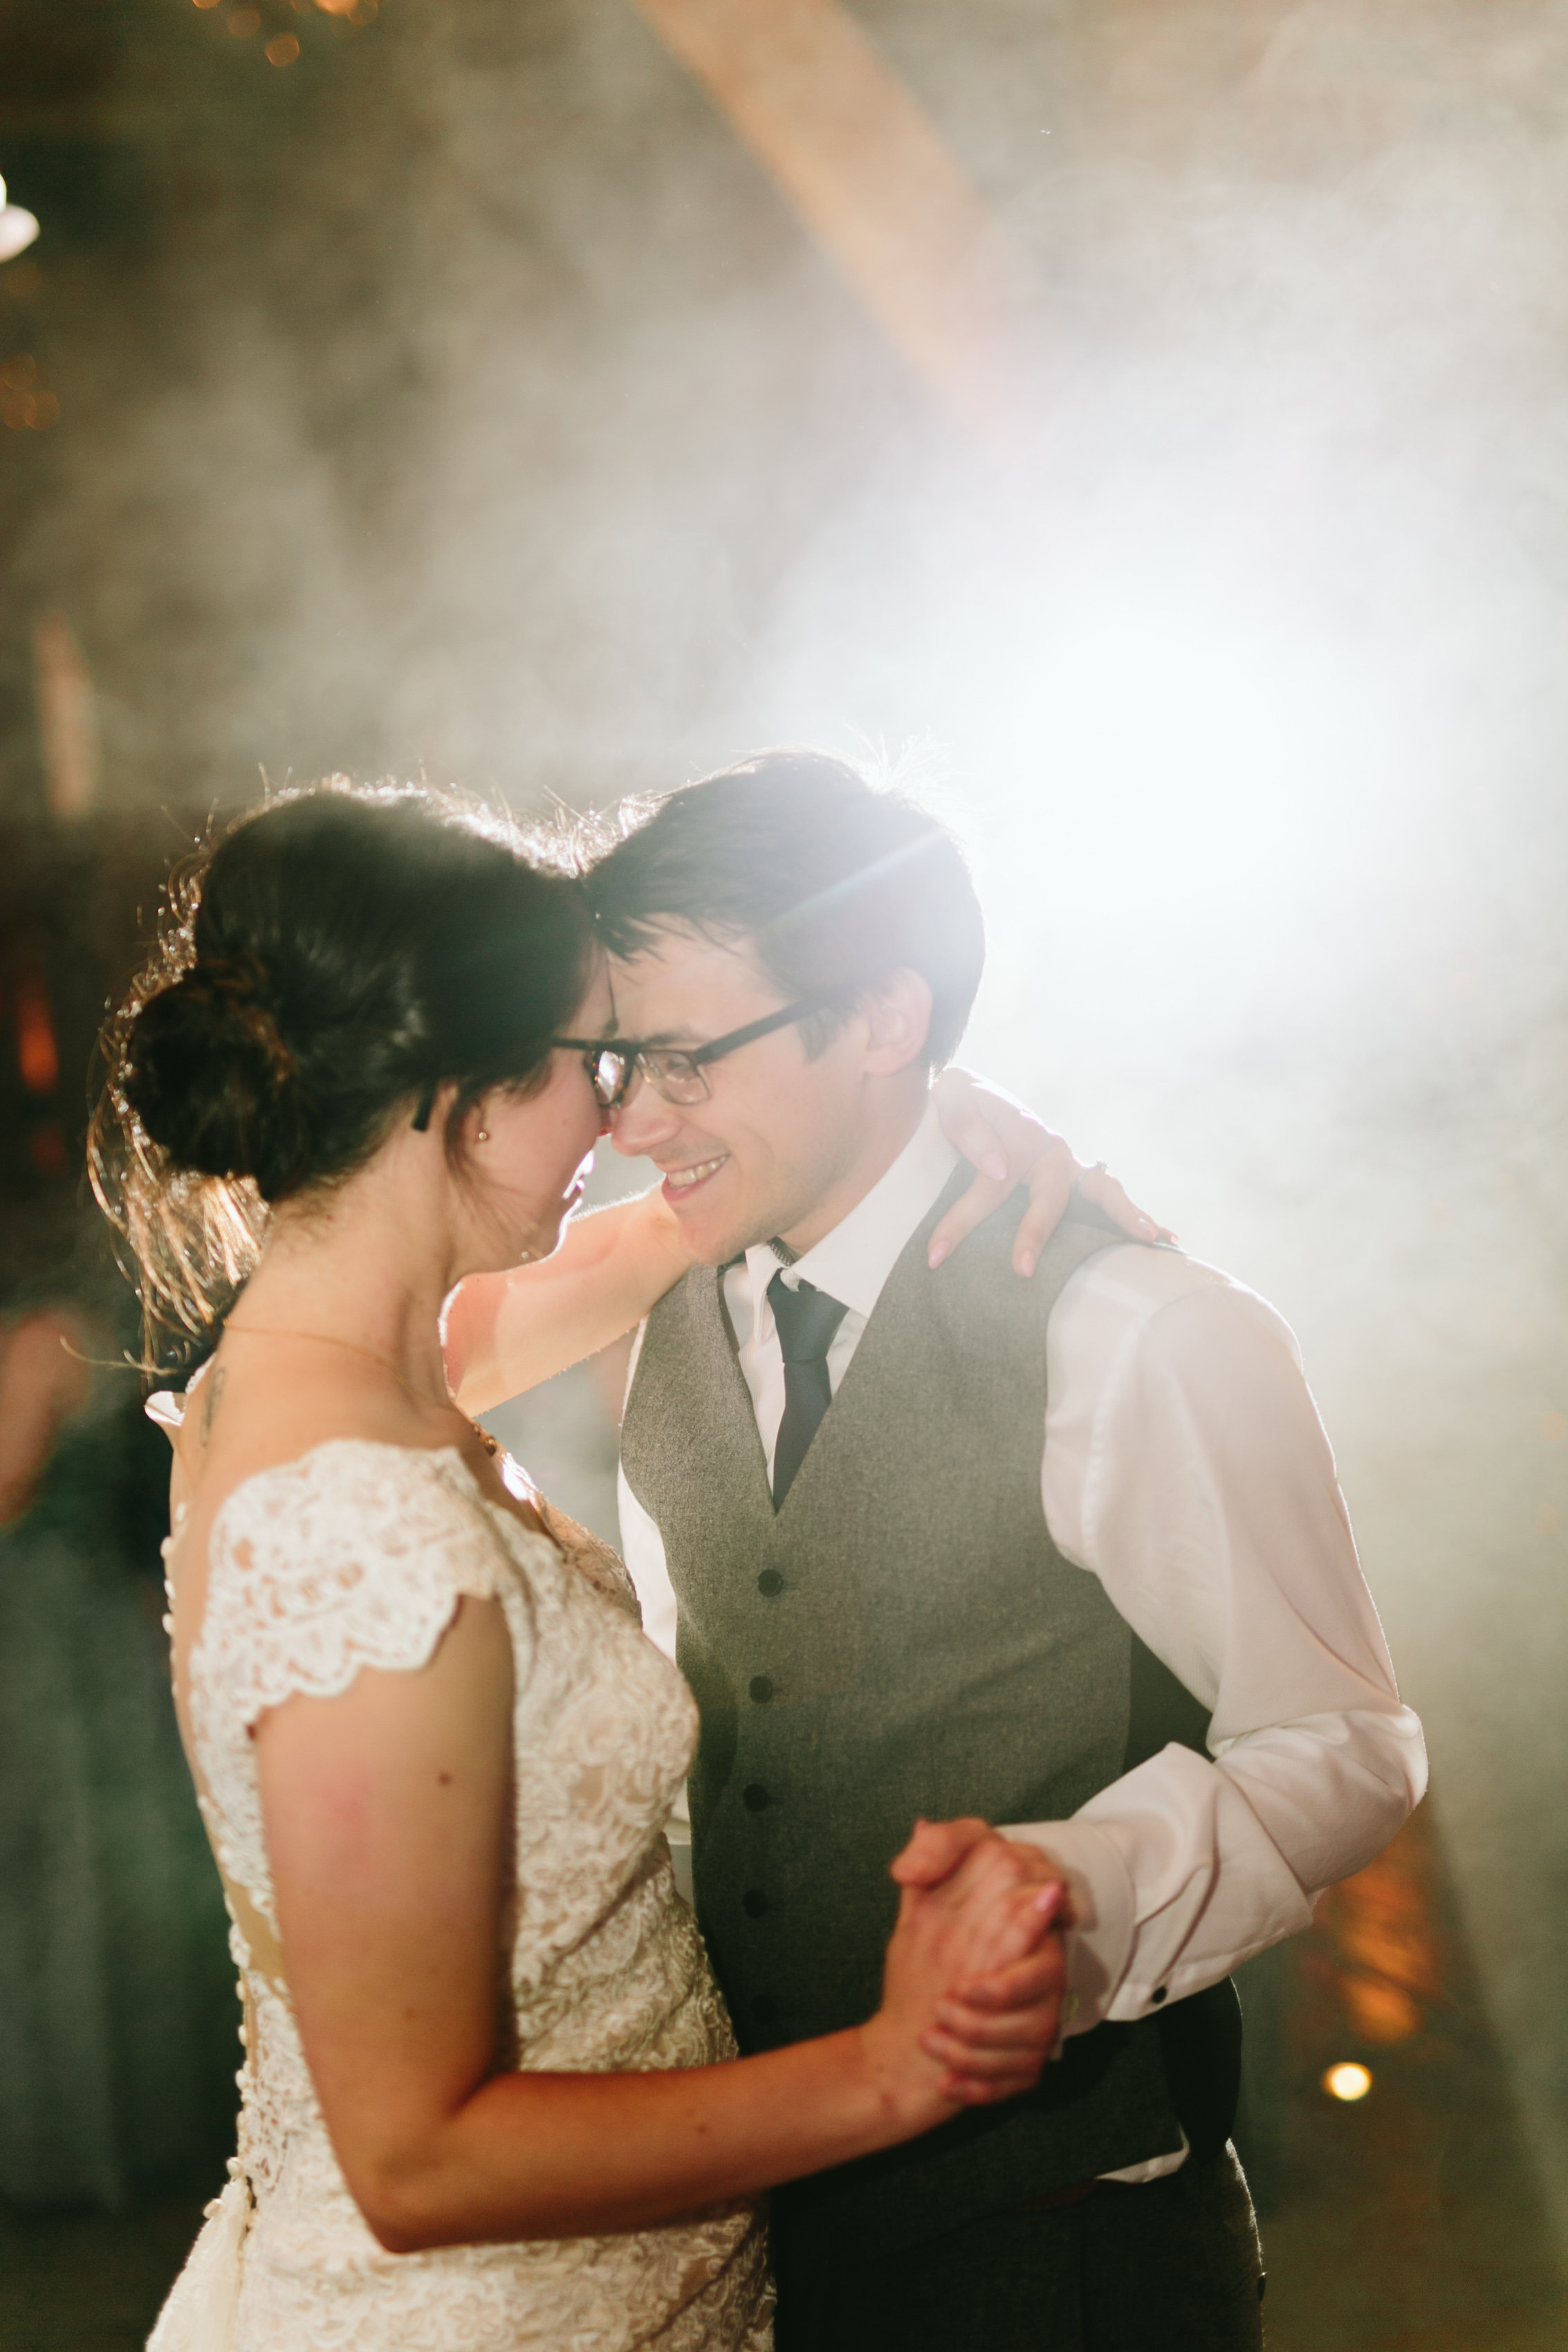 The Best Little Details from Our Wedding - How We Made Our Wedding Incredibly Personal - Choosing the First Dance Song